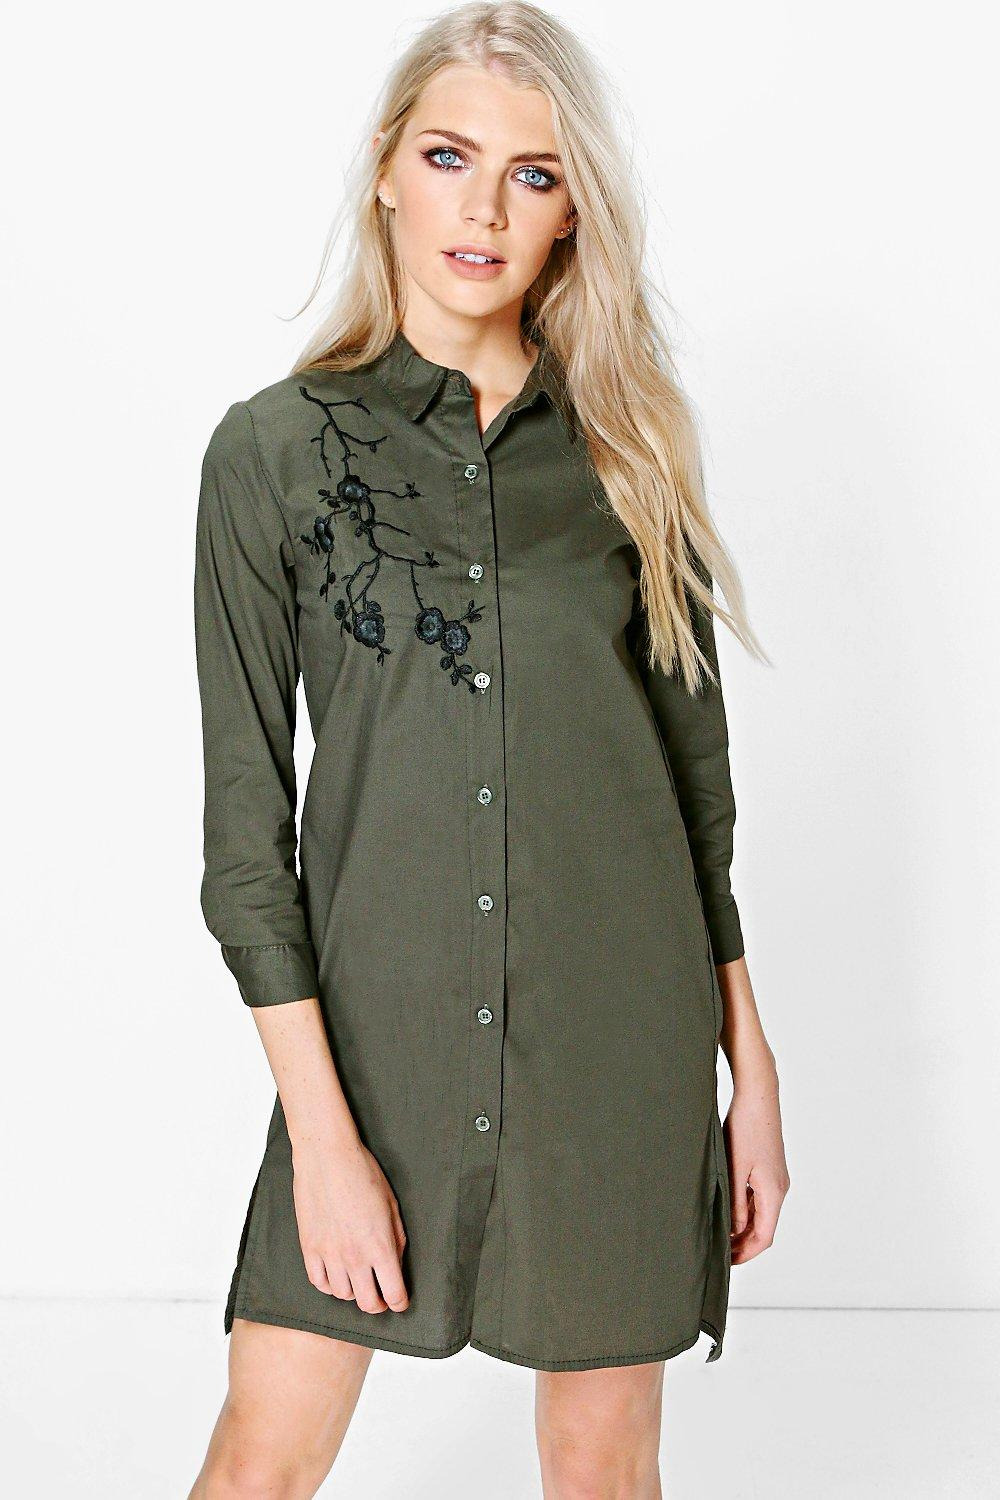 Oriental Embroidary Shirt Dress  khaki